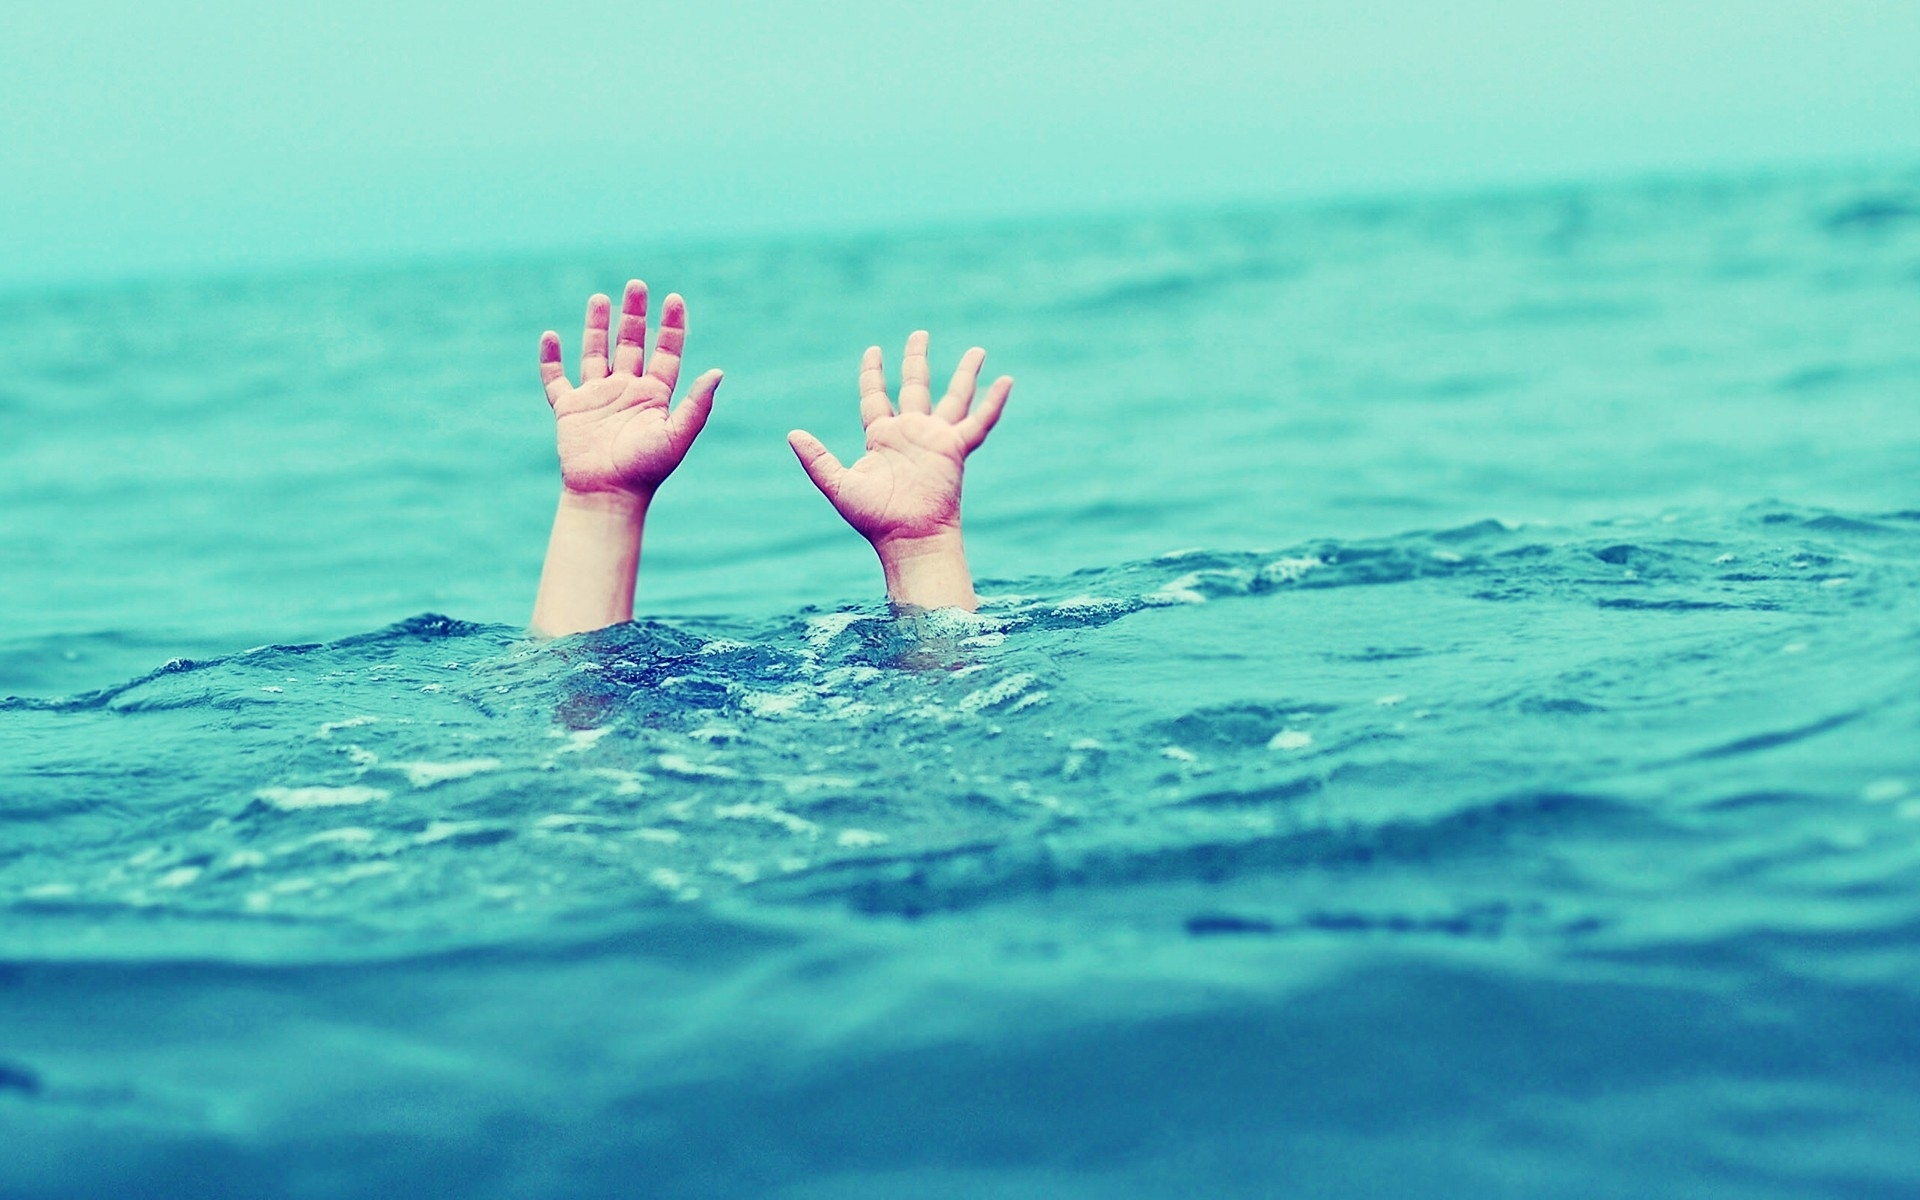 drowning-hands-toolate-allhint.ru_